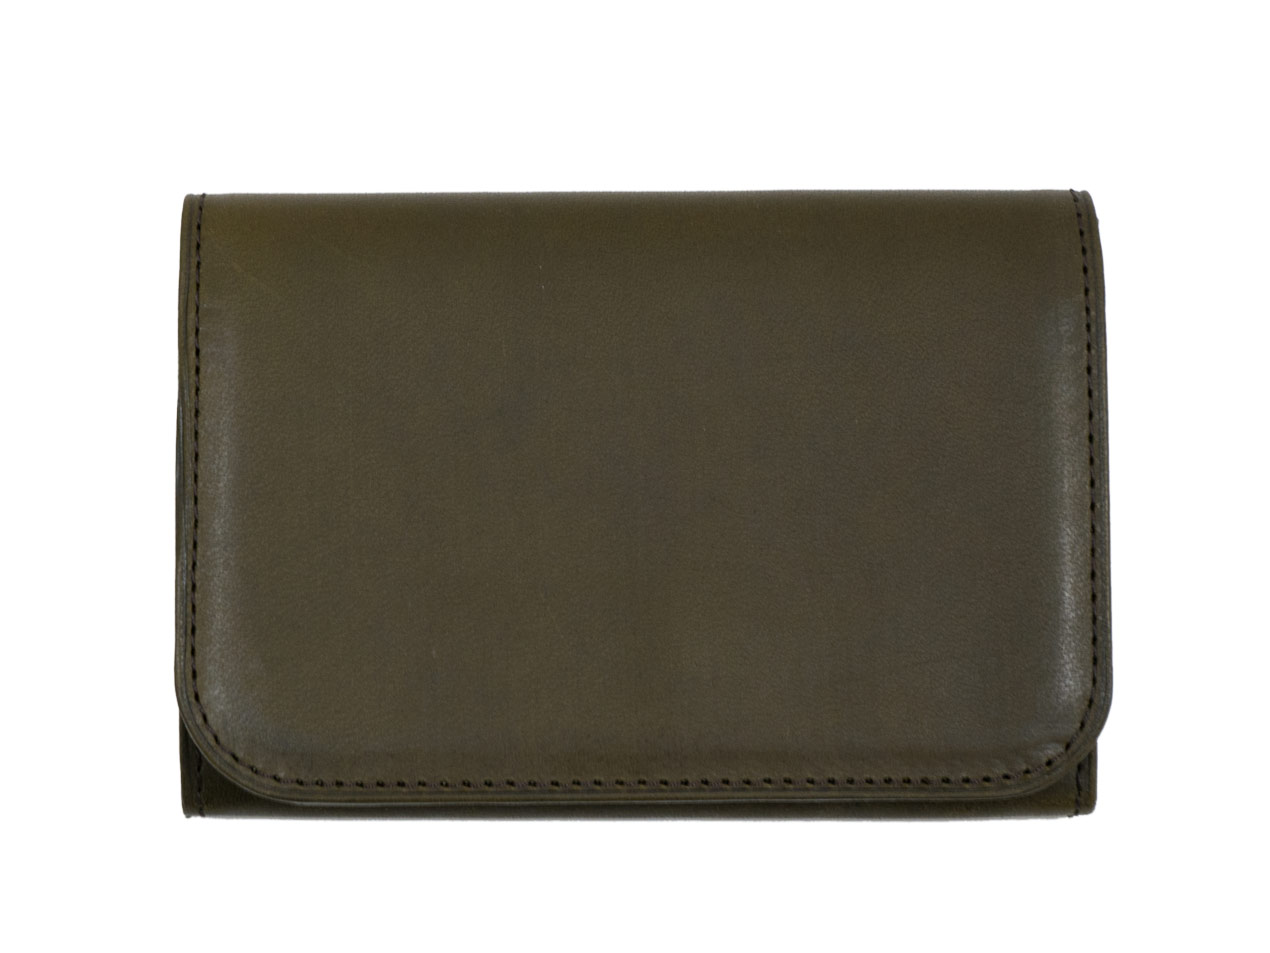 MARGARET HOWELL x PORTER OIL LEATHER CARD CASE / FOLDED WALLET